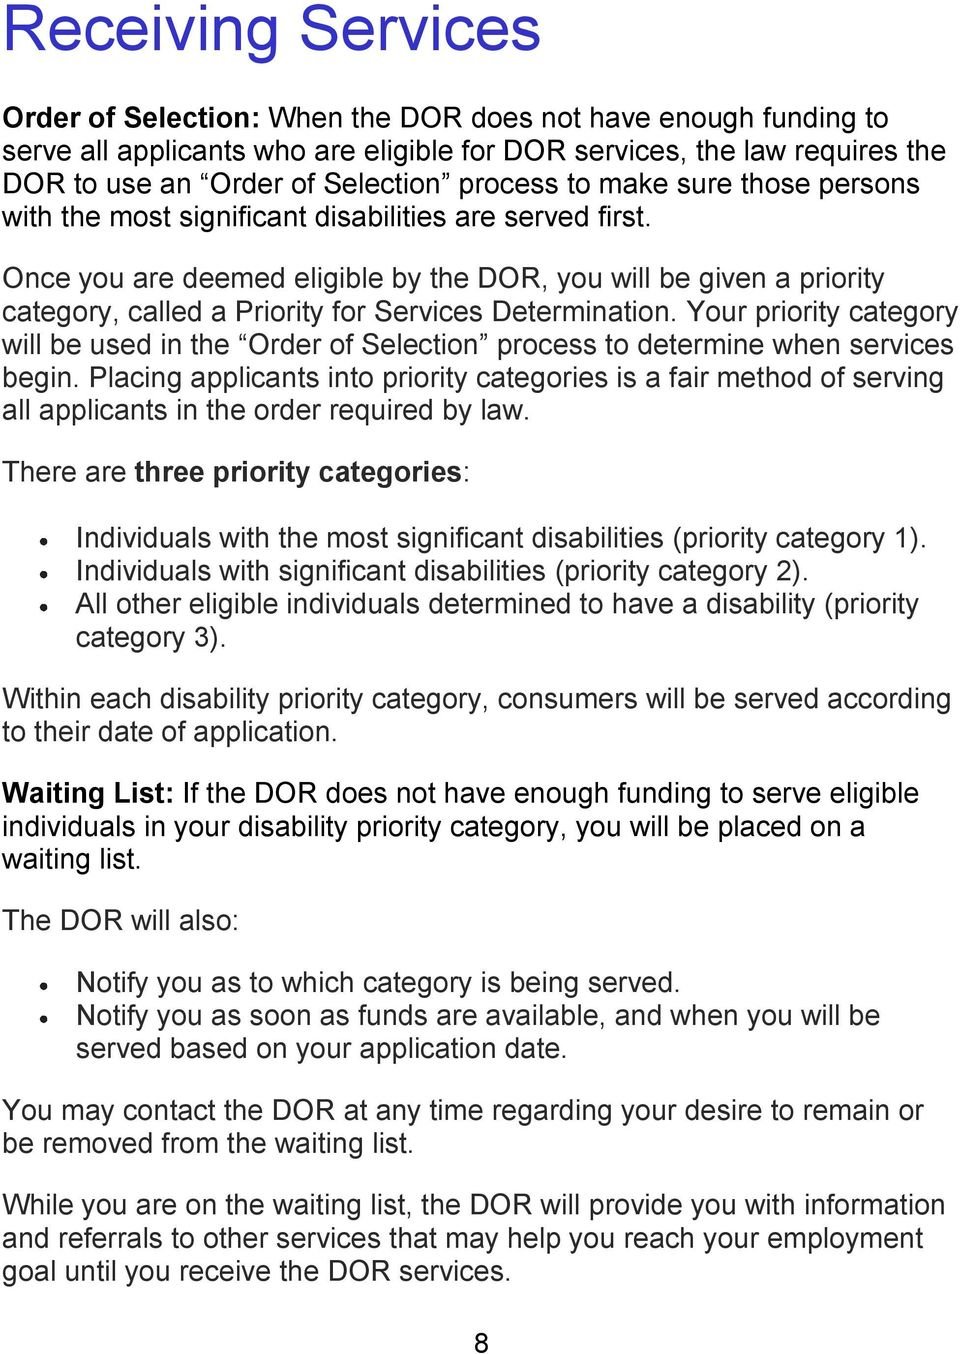 Once you are deemed eligible by the DOR, you will be given a priority category, called a Priority for Services Determination.